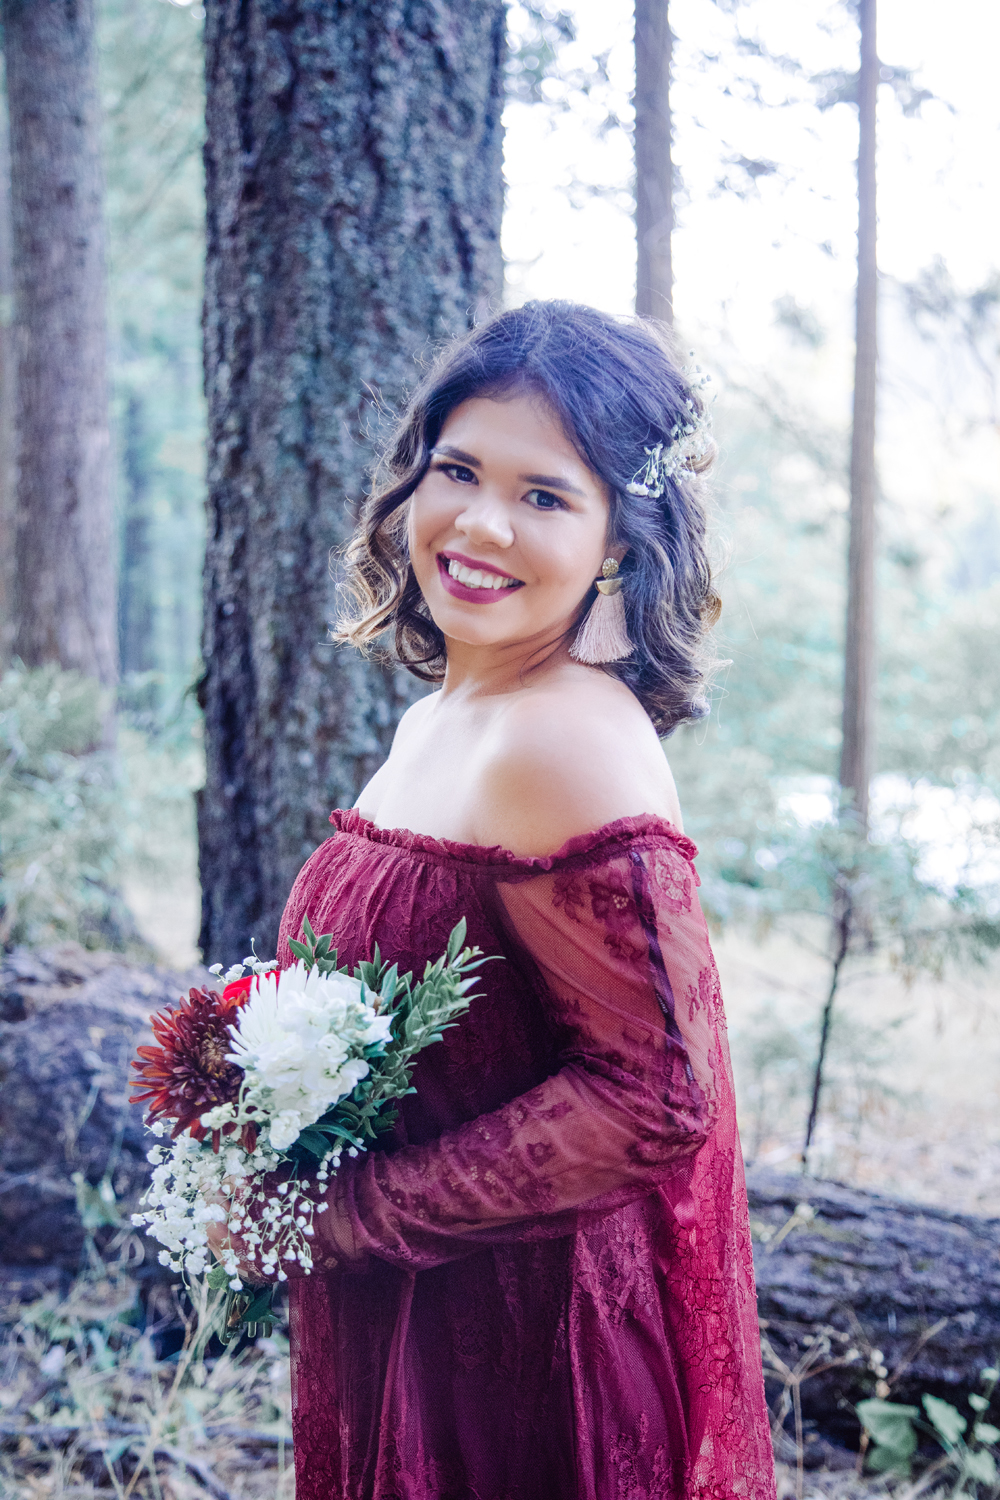 Rustic-Forest-Country-Wedding-Chico-CA6Rustic-Forest-Country-Wedding-Chico-CA.jpg